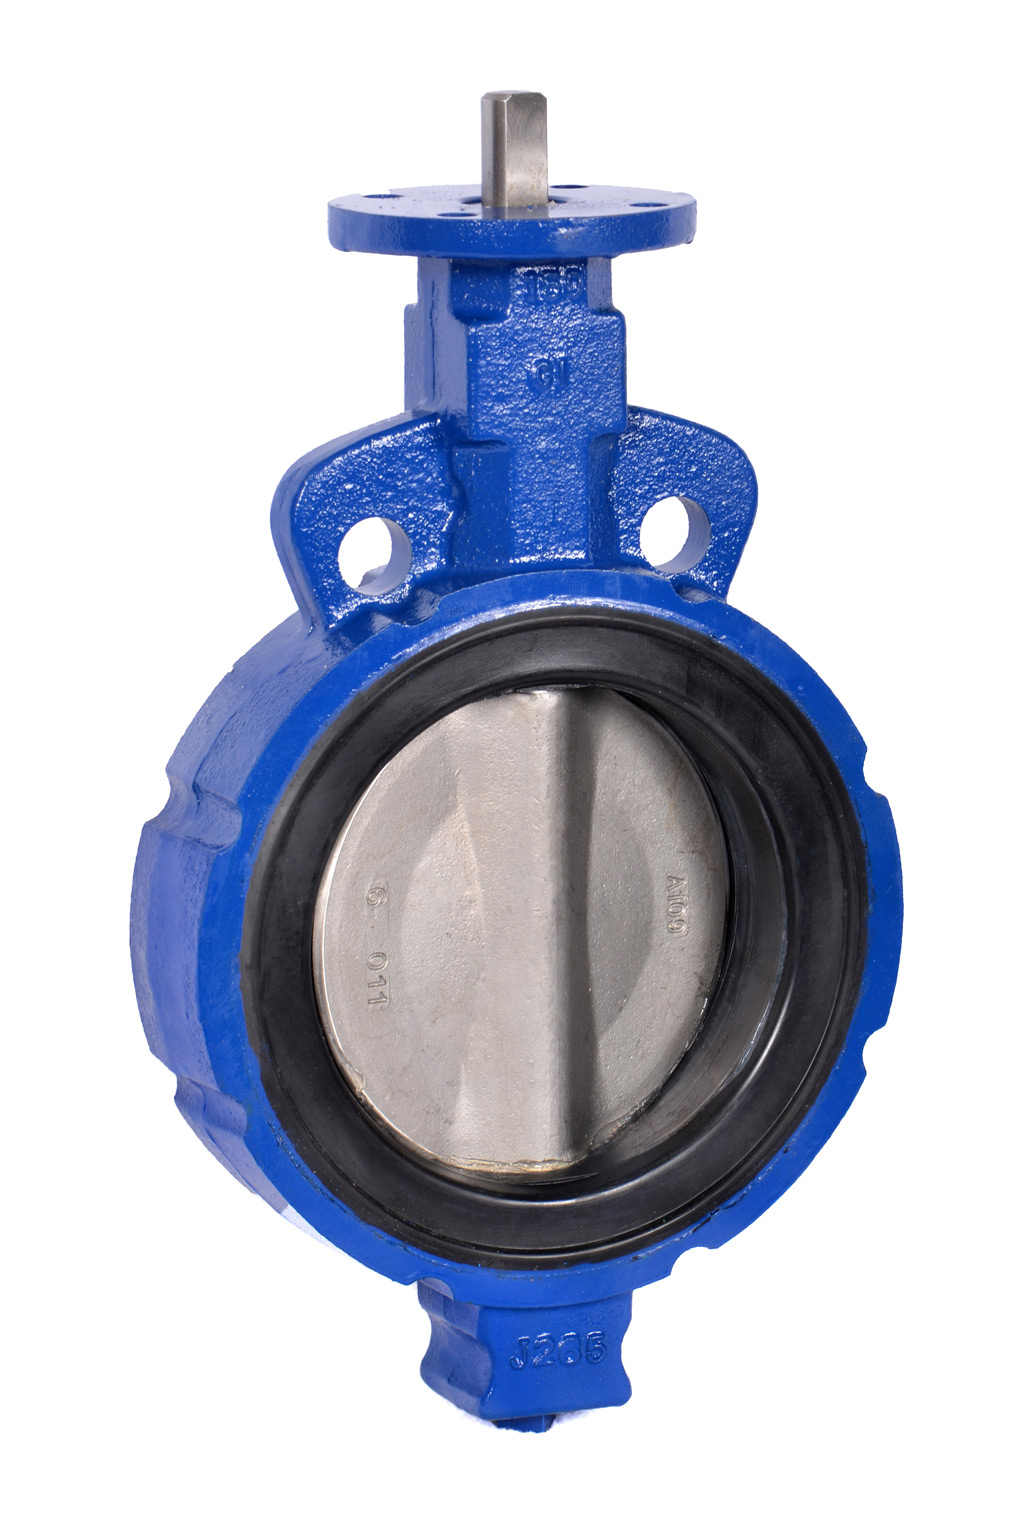 Keystone Resilient Seated Butterfly Valves Resilient